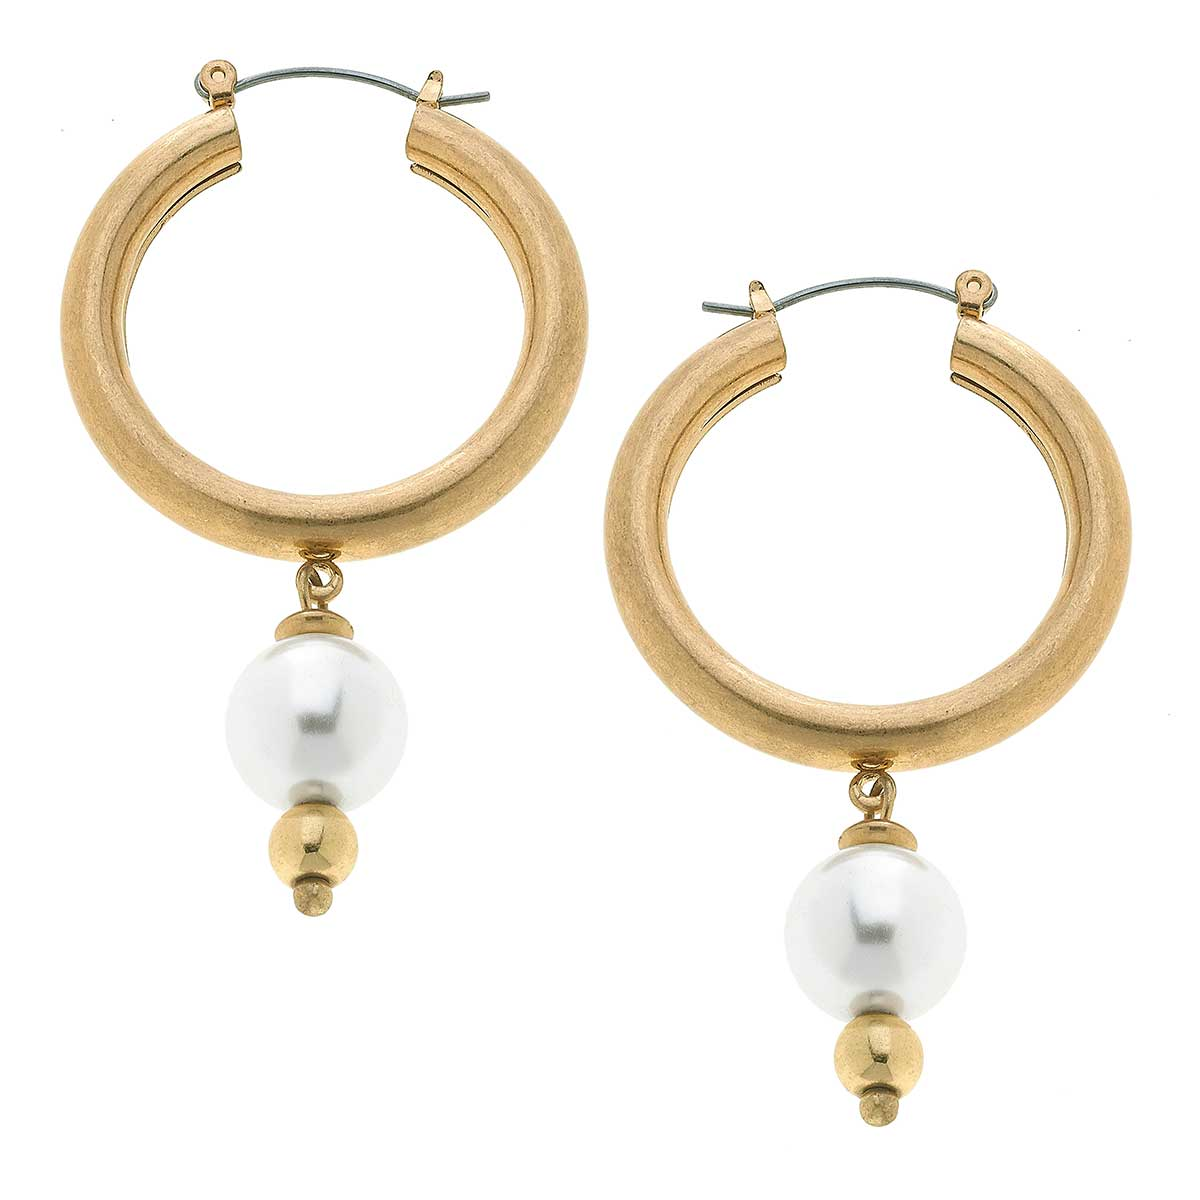 Nina Pearl Drop Hoop Earrings in Worn Gold